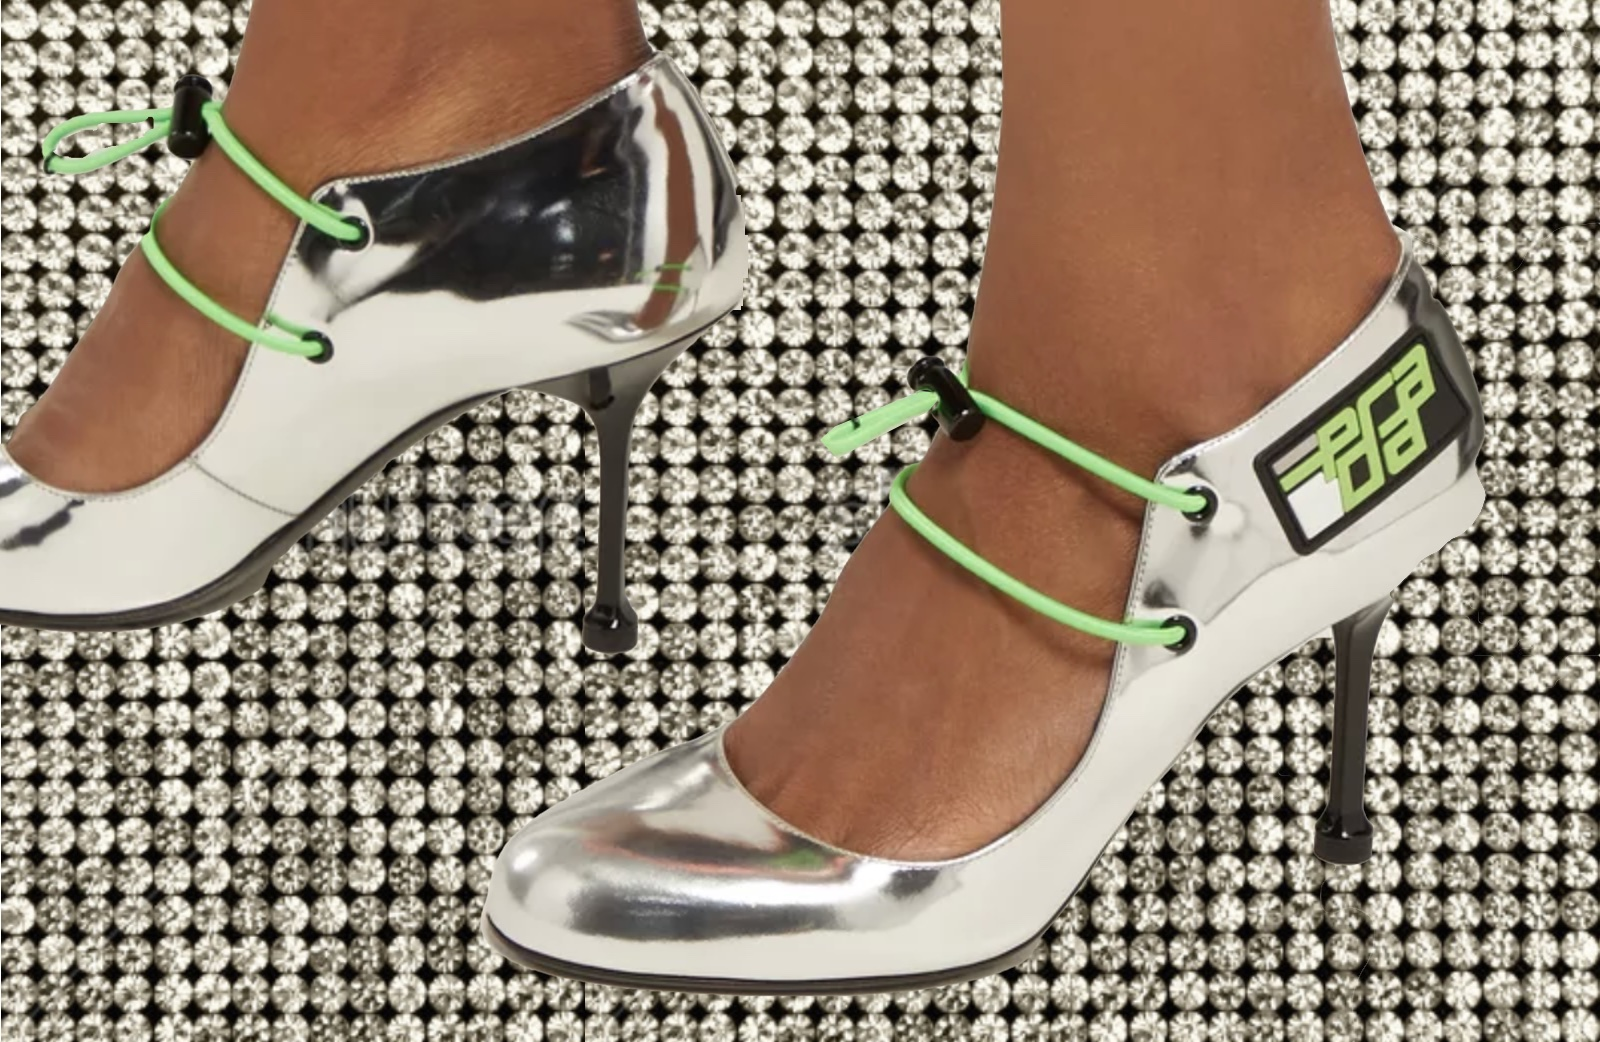 Shoes That Aren't Black – Sayge Girl